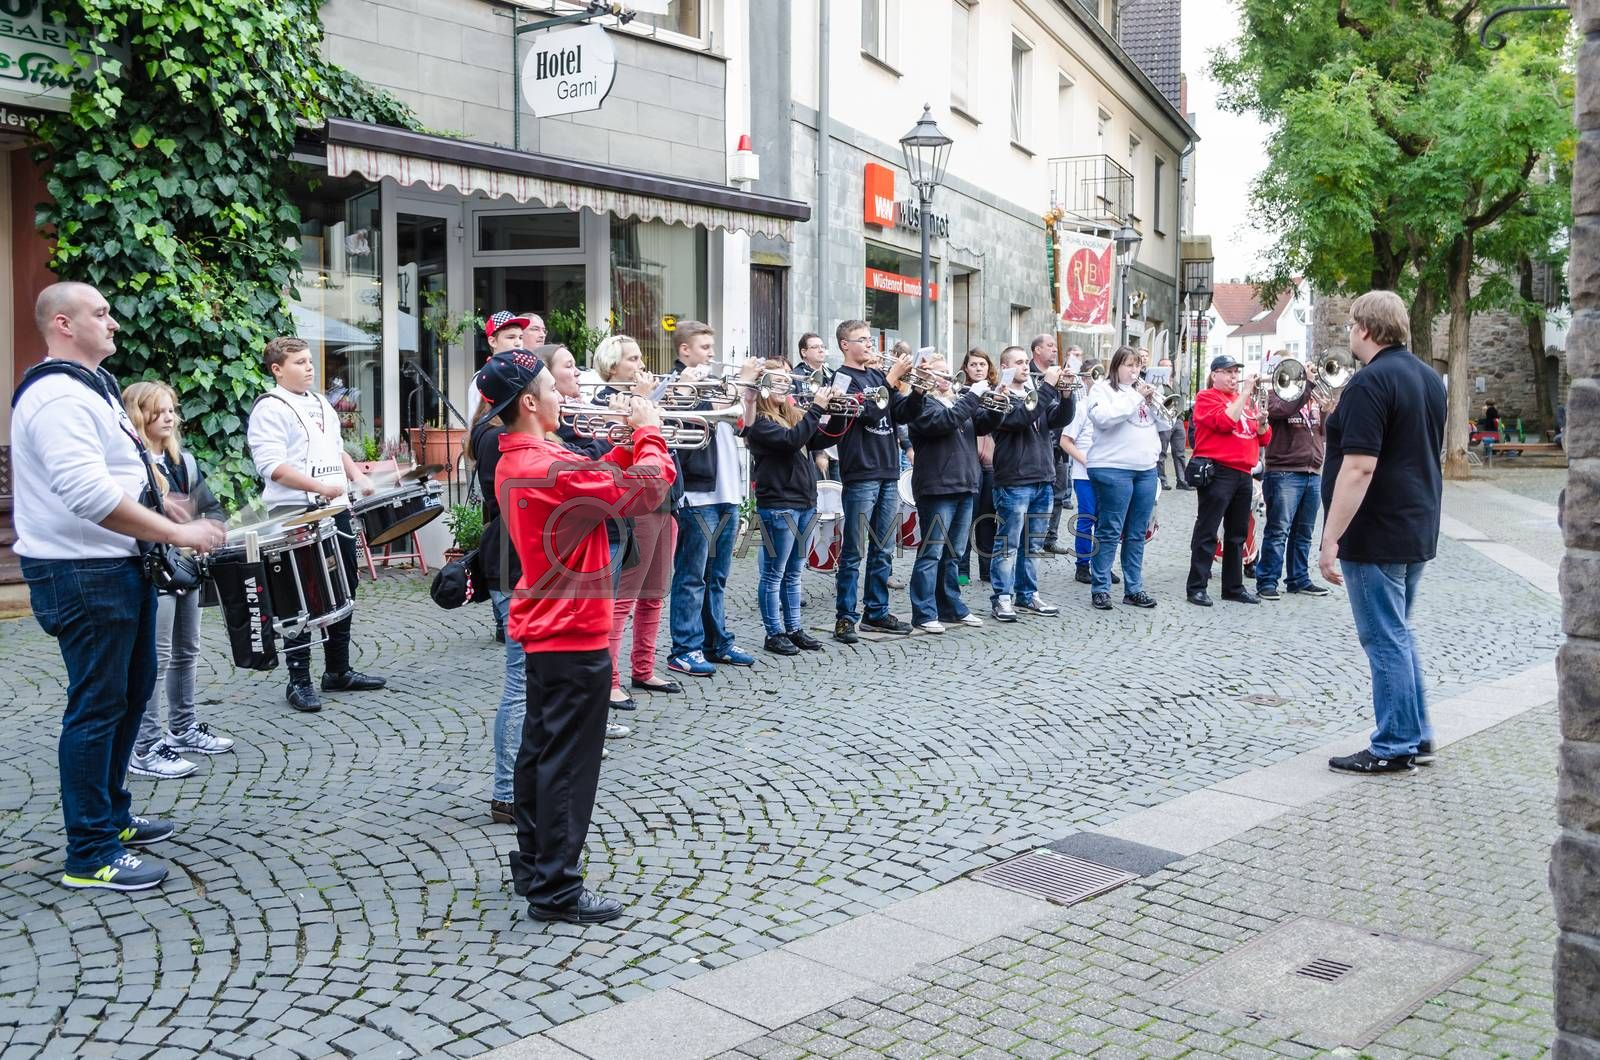 Hattingen old town, Nrw, Germany - October 10, 2014: Members of a marching band chapel to open a restaurant in the old town of Hattingen. In Vordergurnd the conductor.